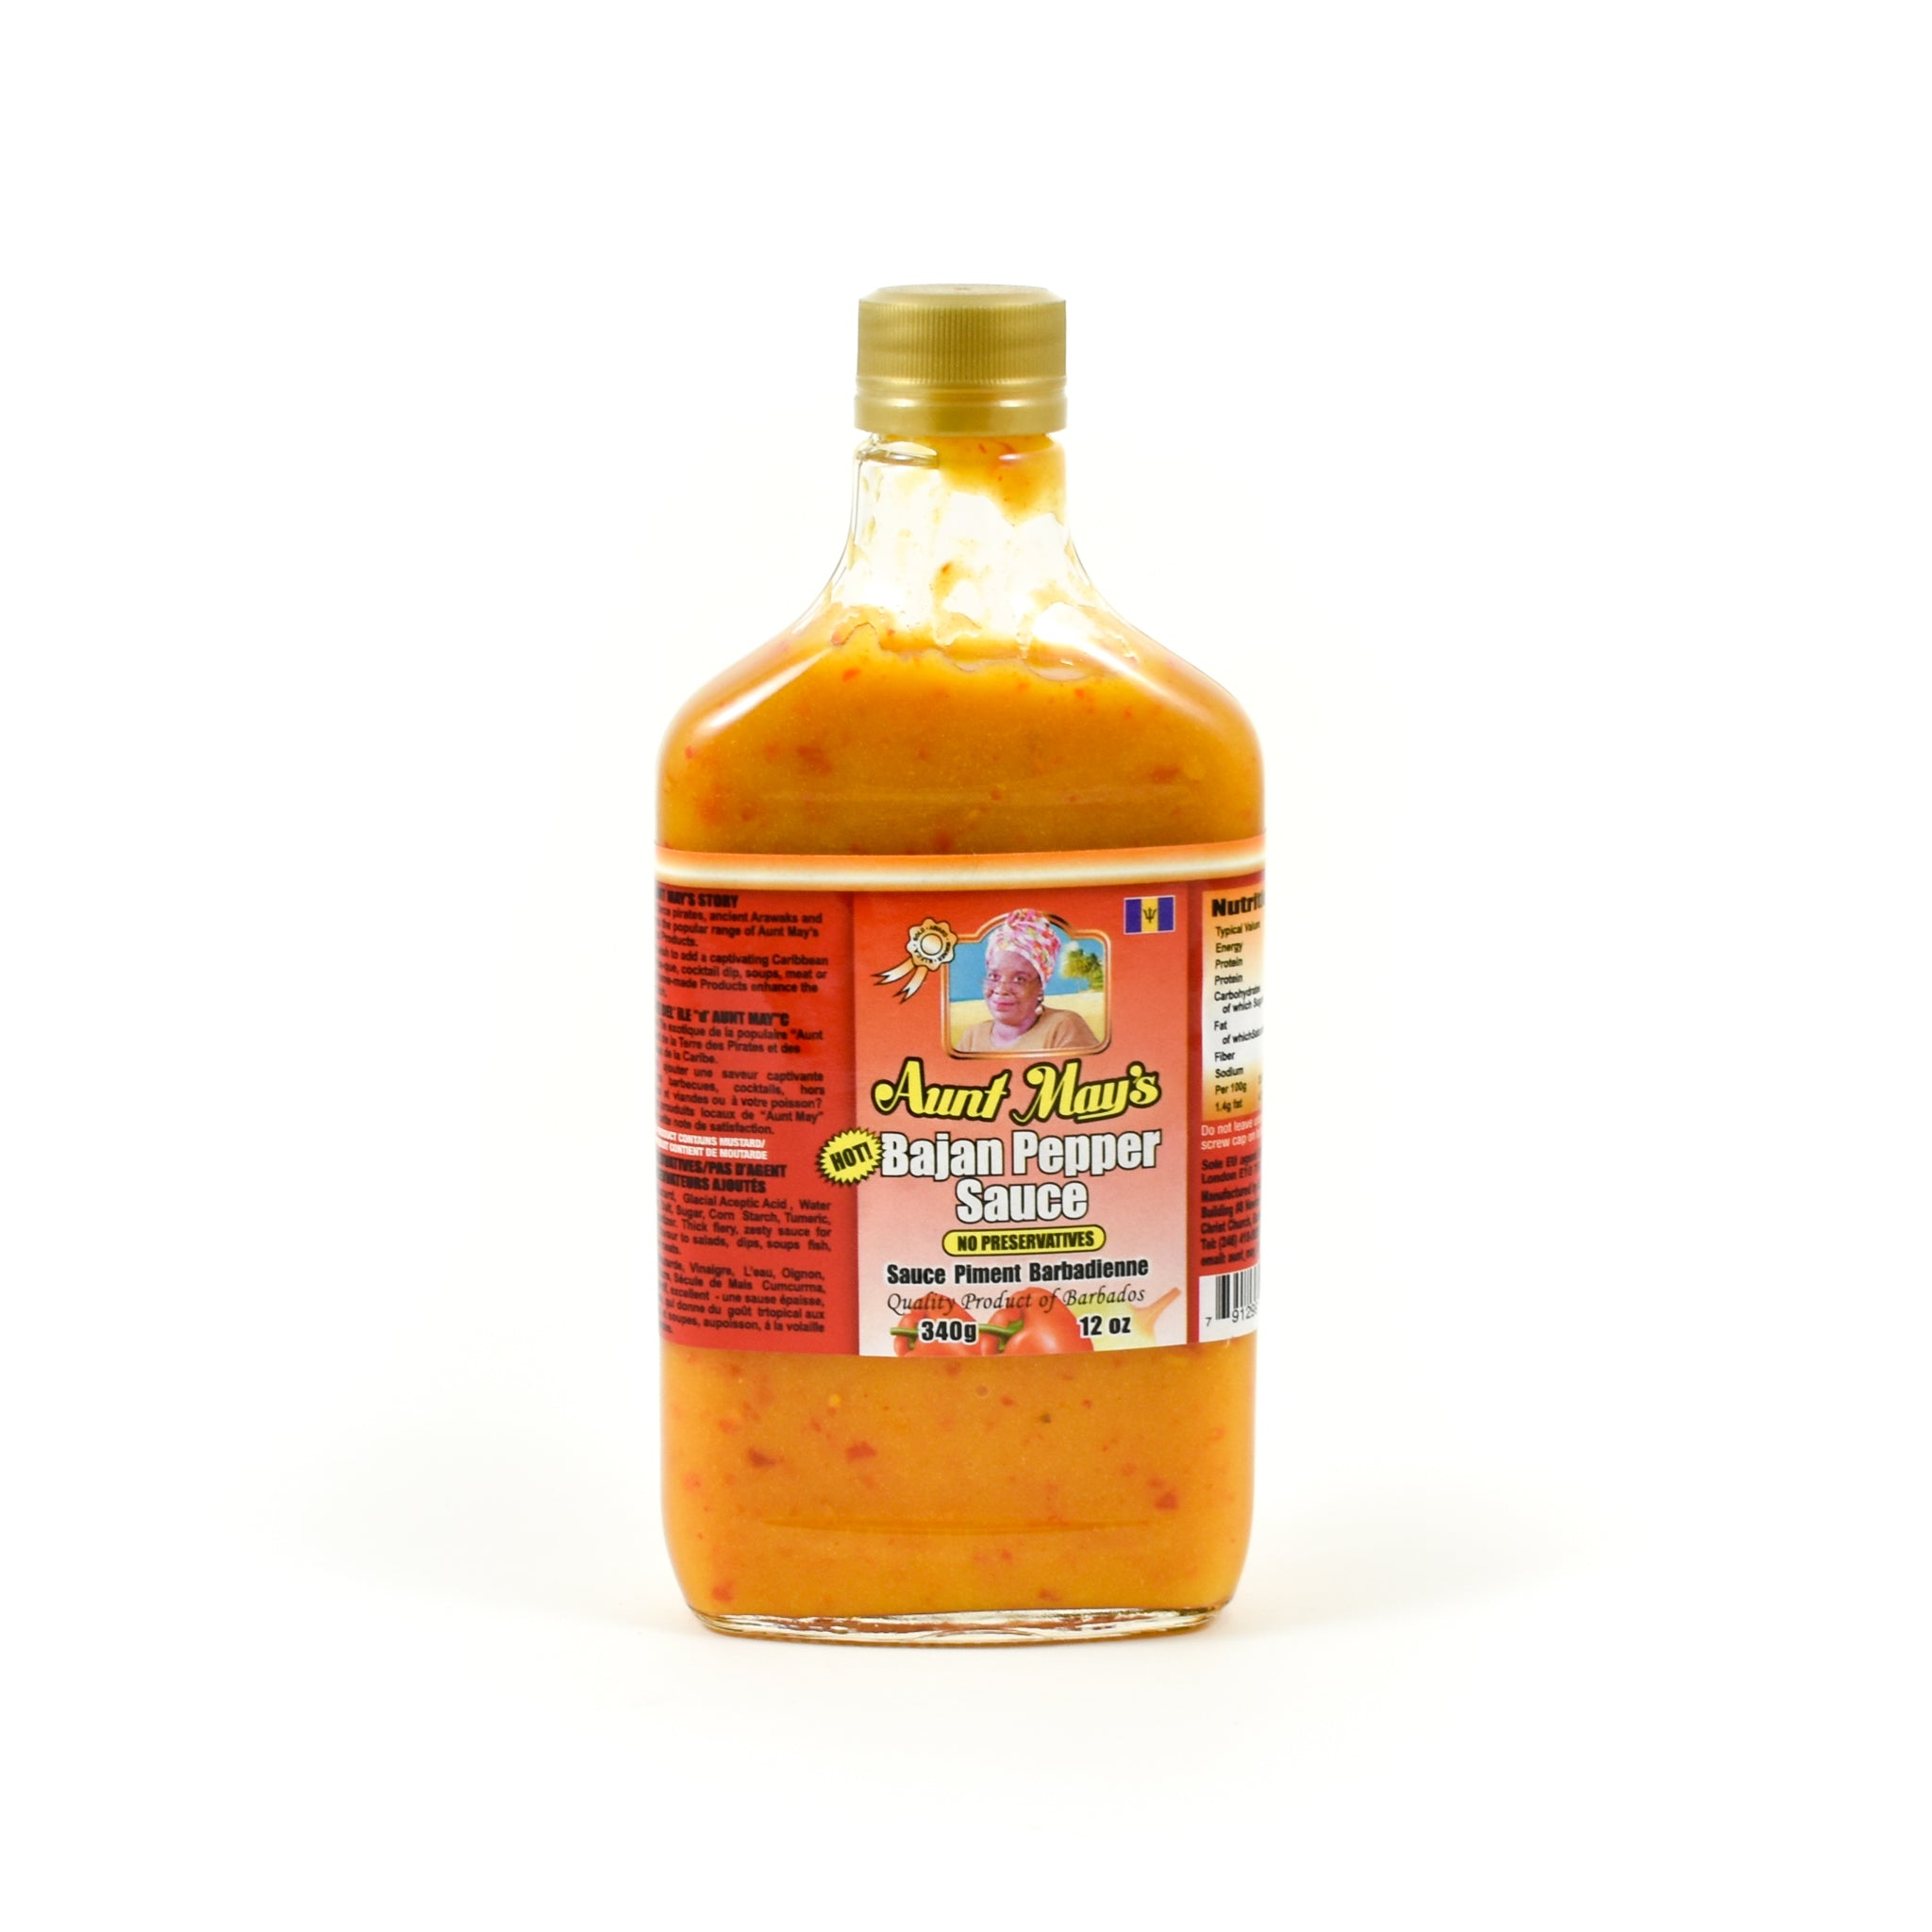 Aunt May's Bajan Pepper Sauce 340g Ingredients Sauces & Condiments American Sauces & Condiments